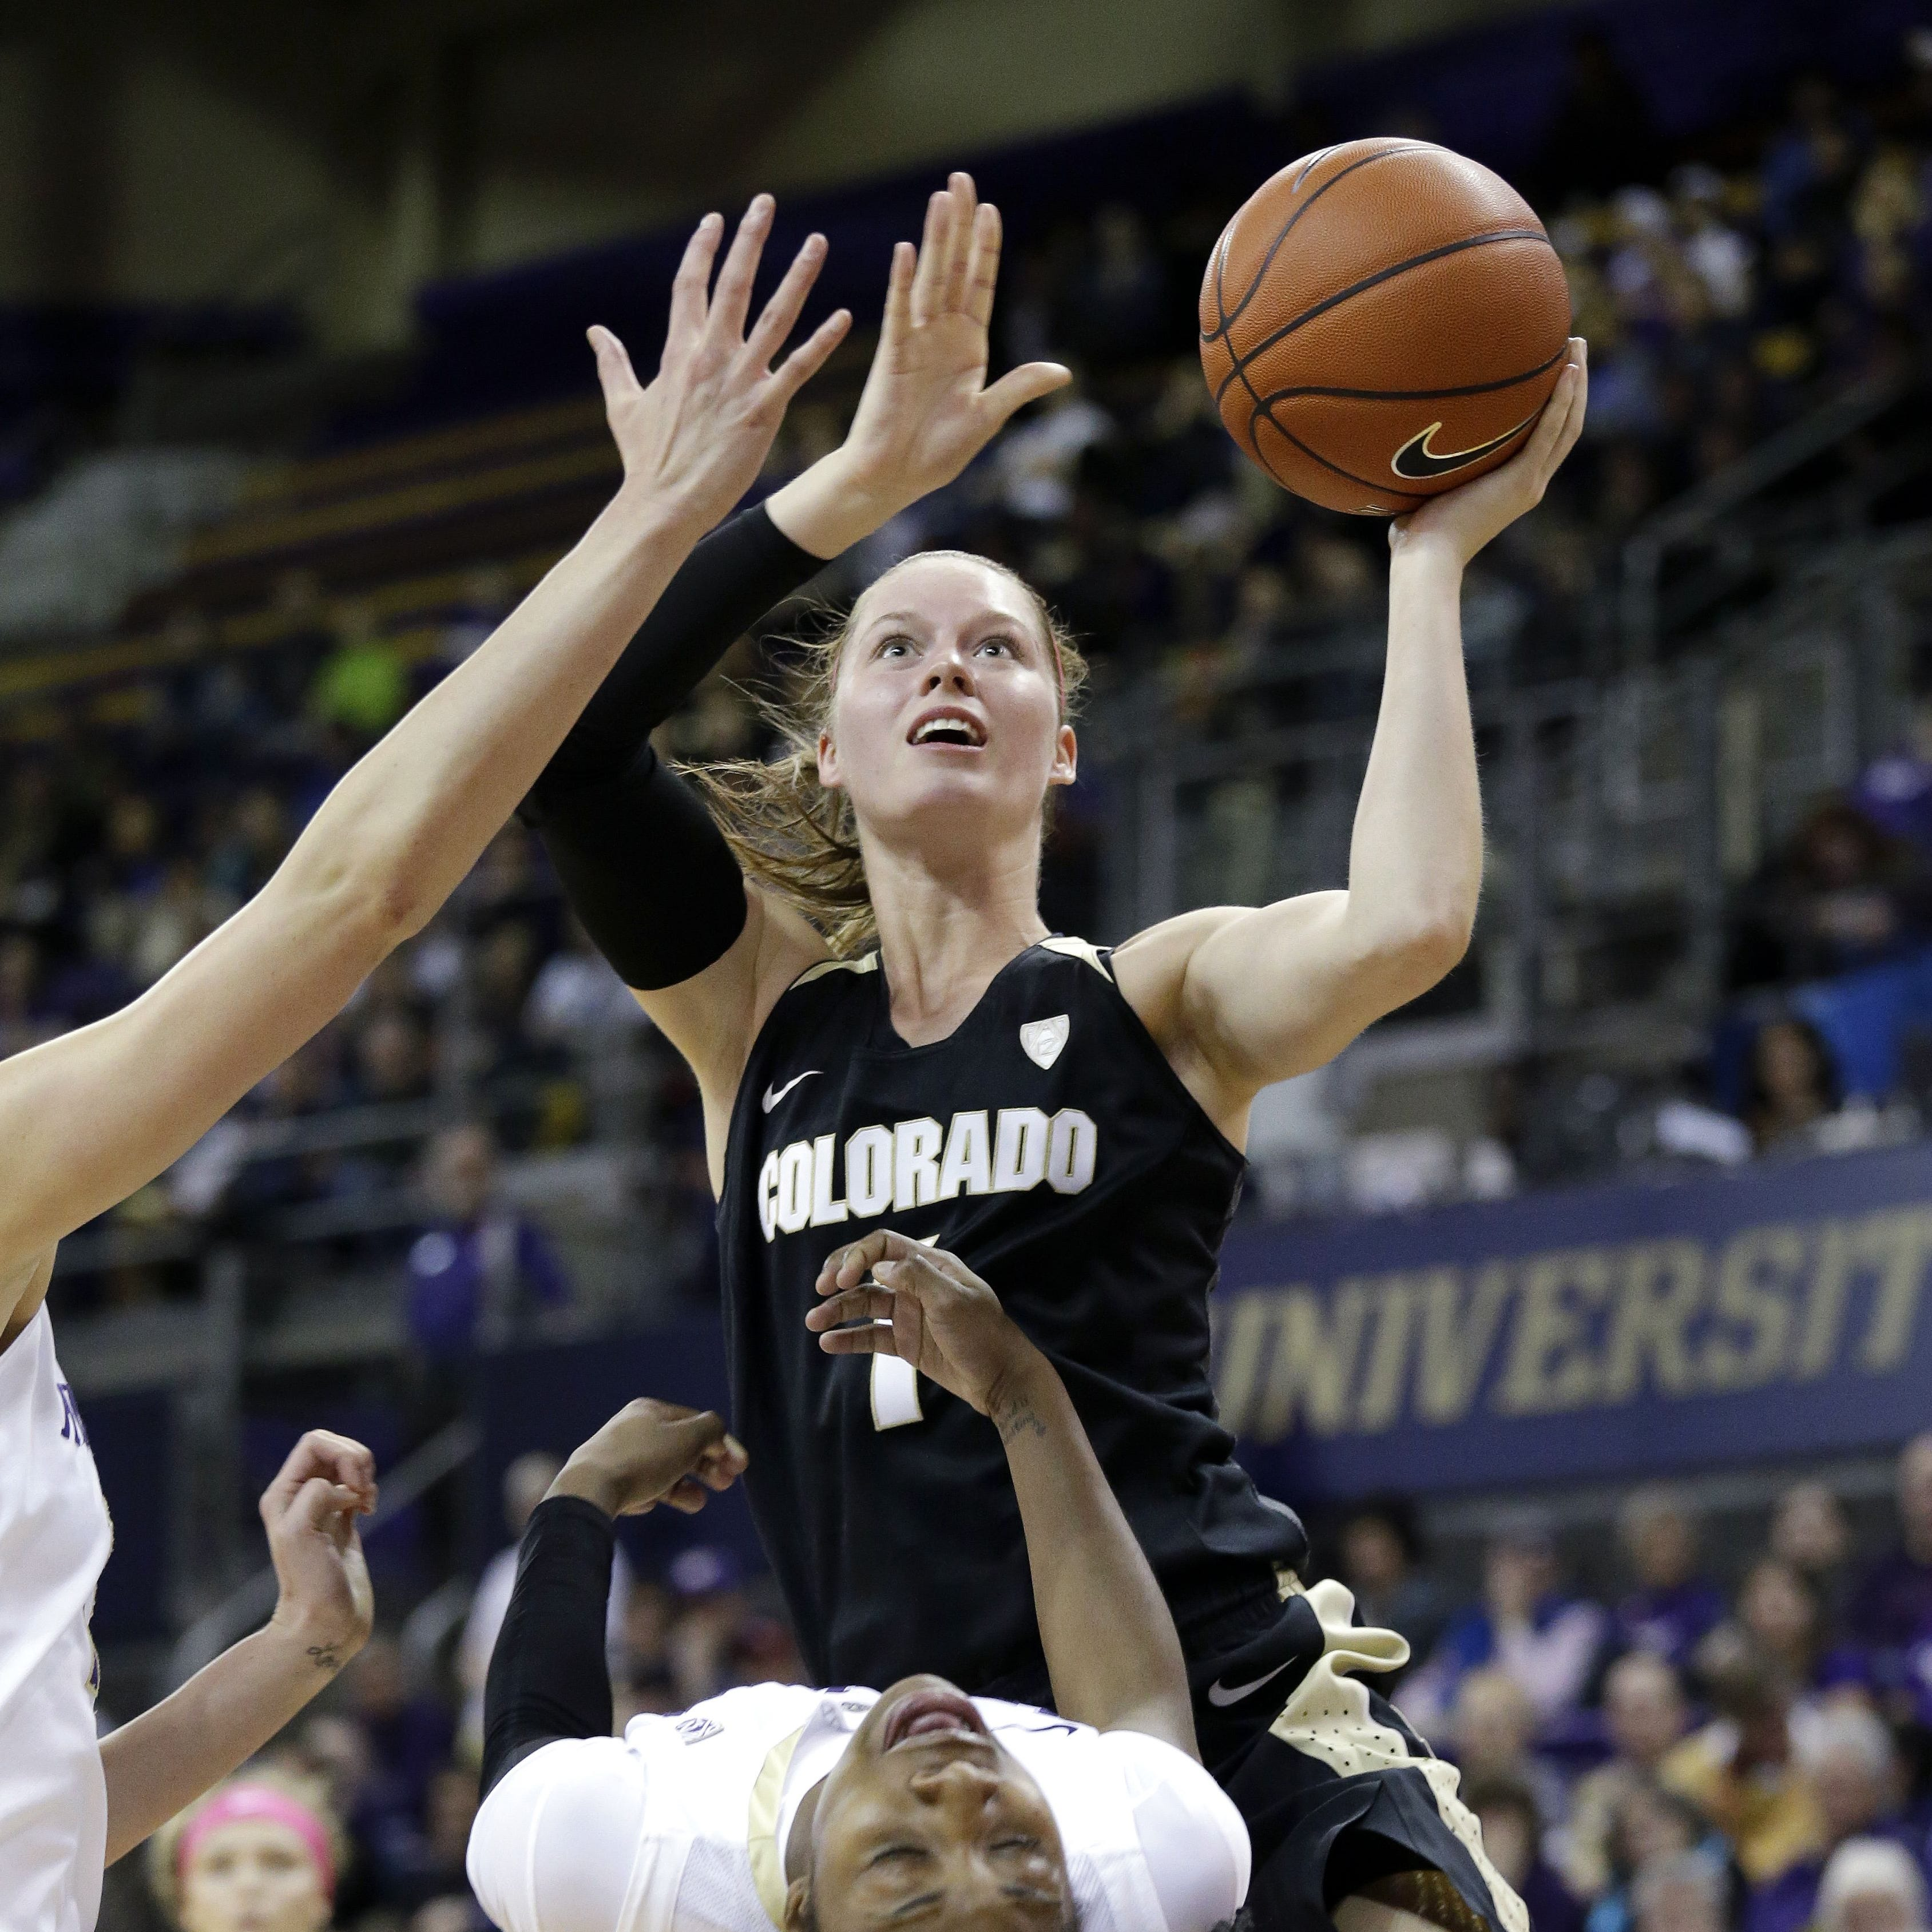 Former CU player Makenzie Ellis joins Colorado State women's basketball team